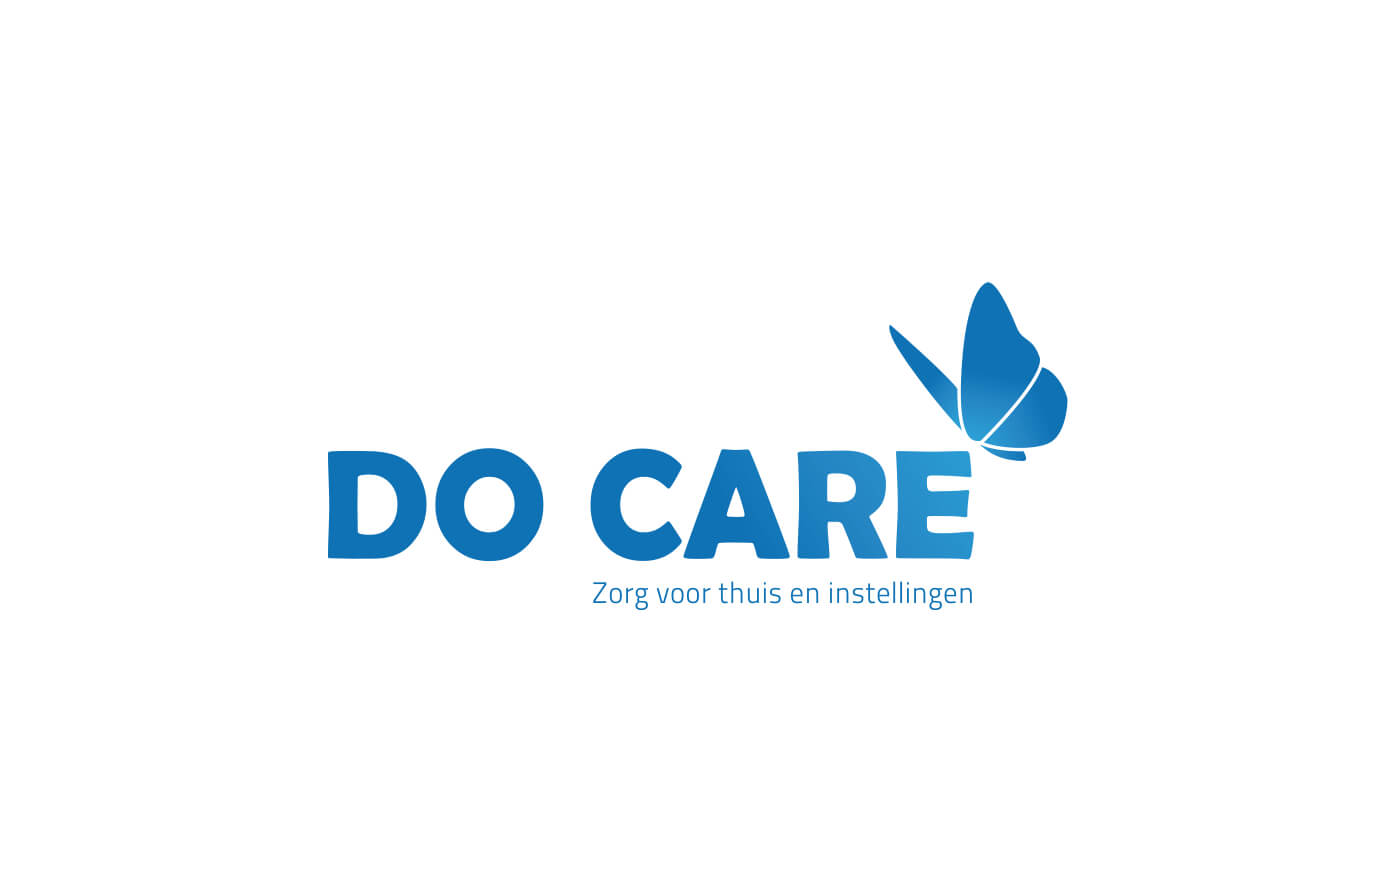 2011 Stichting Do Care logo